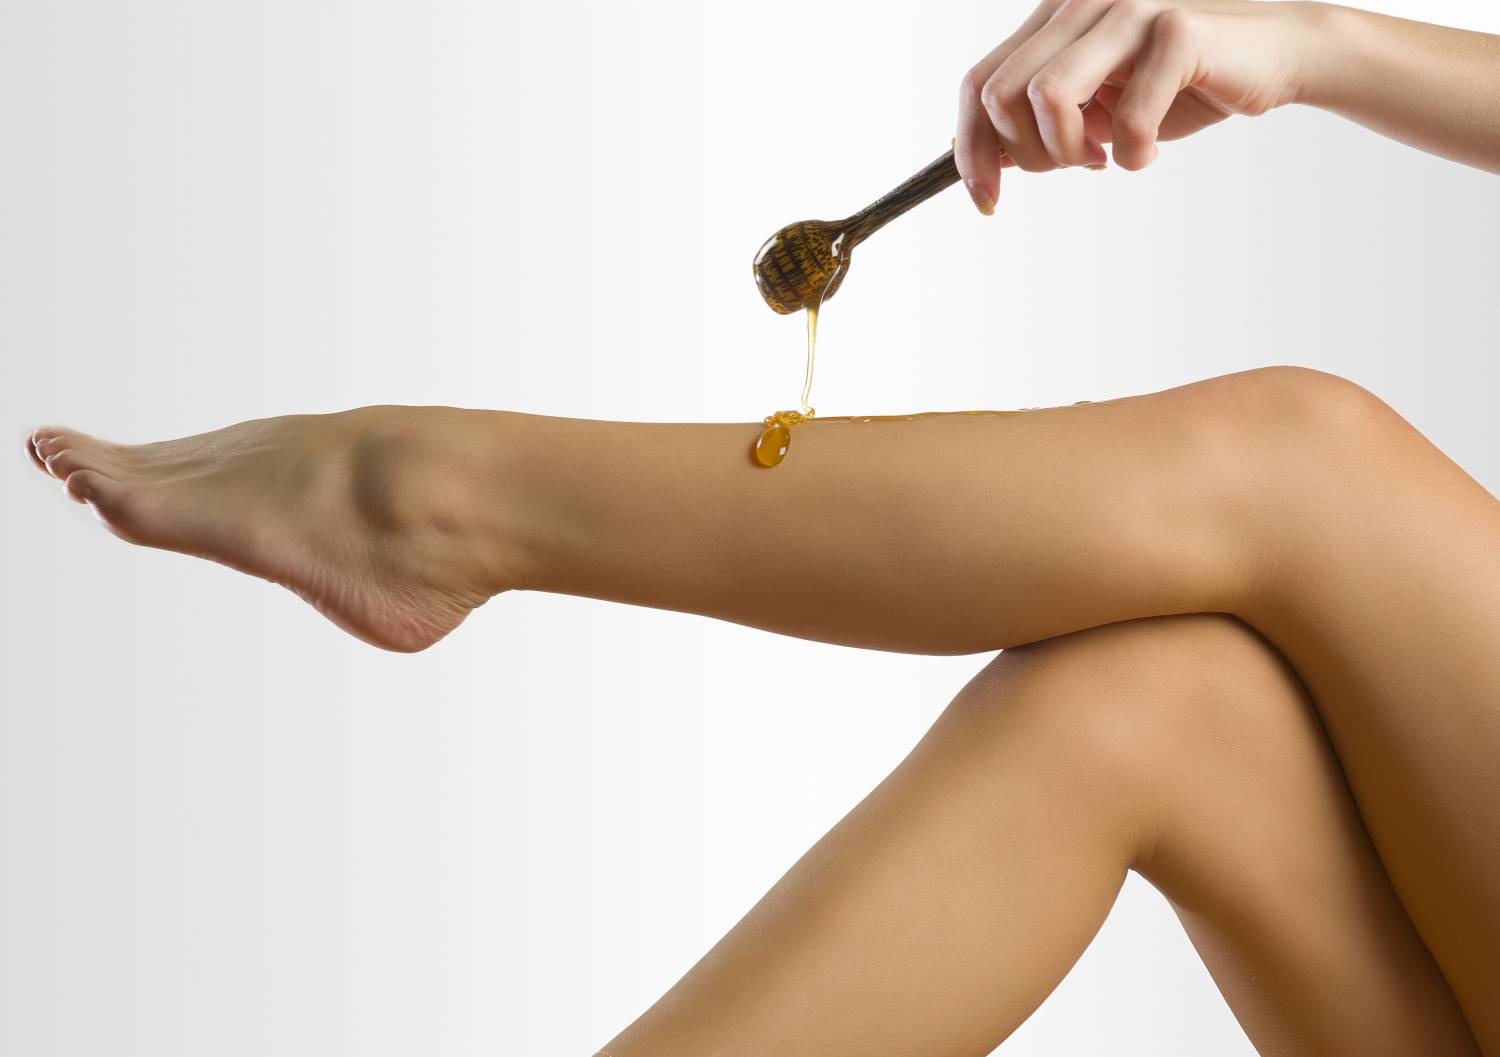 Redness or pimples/spots after waxing